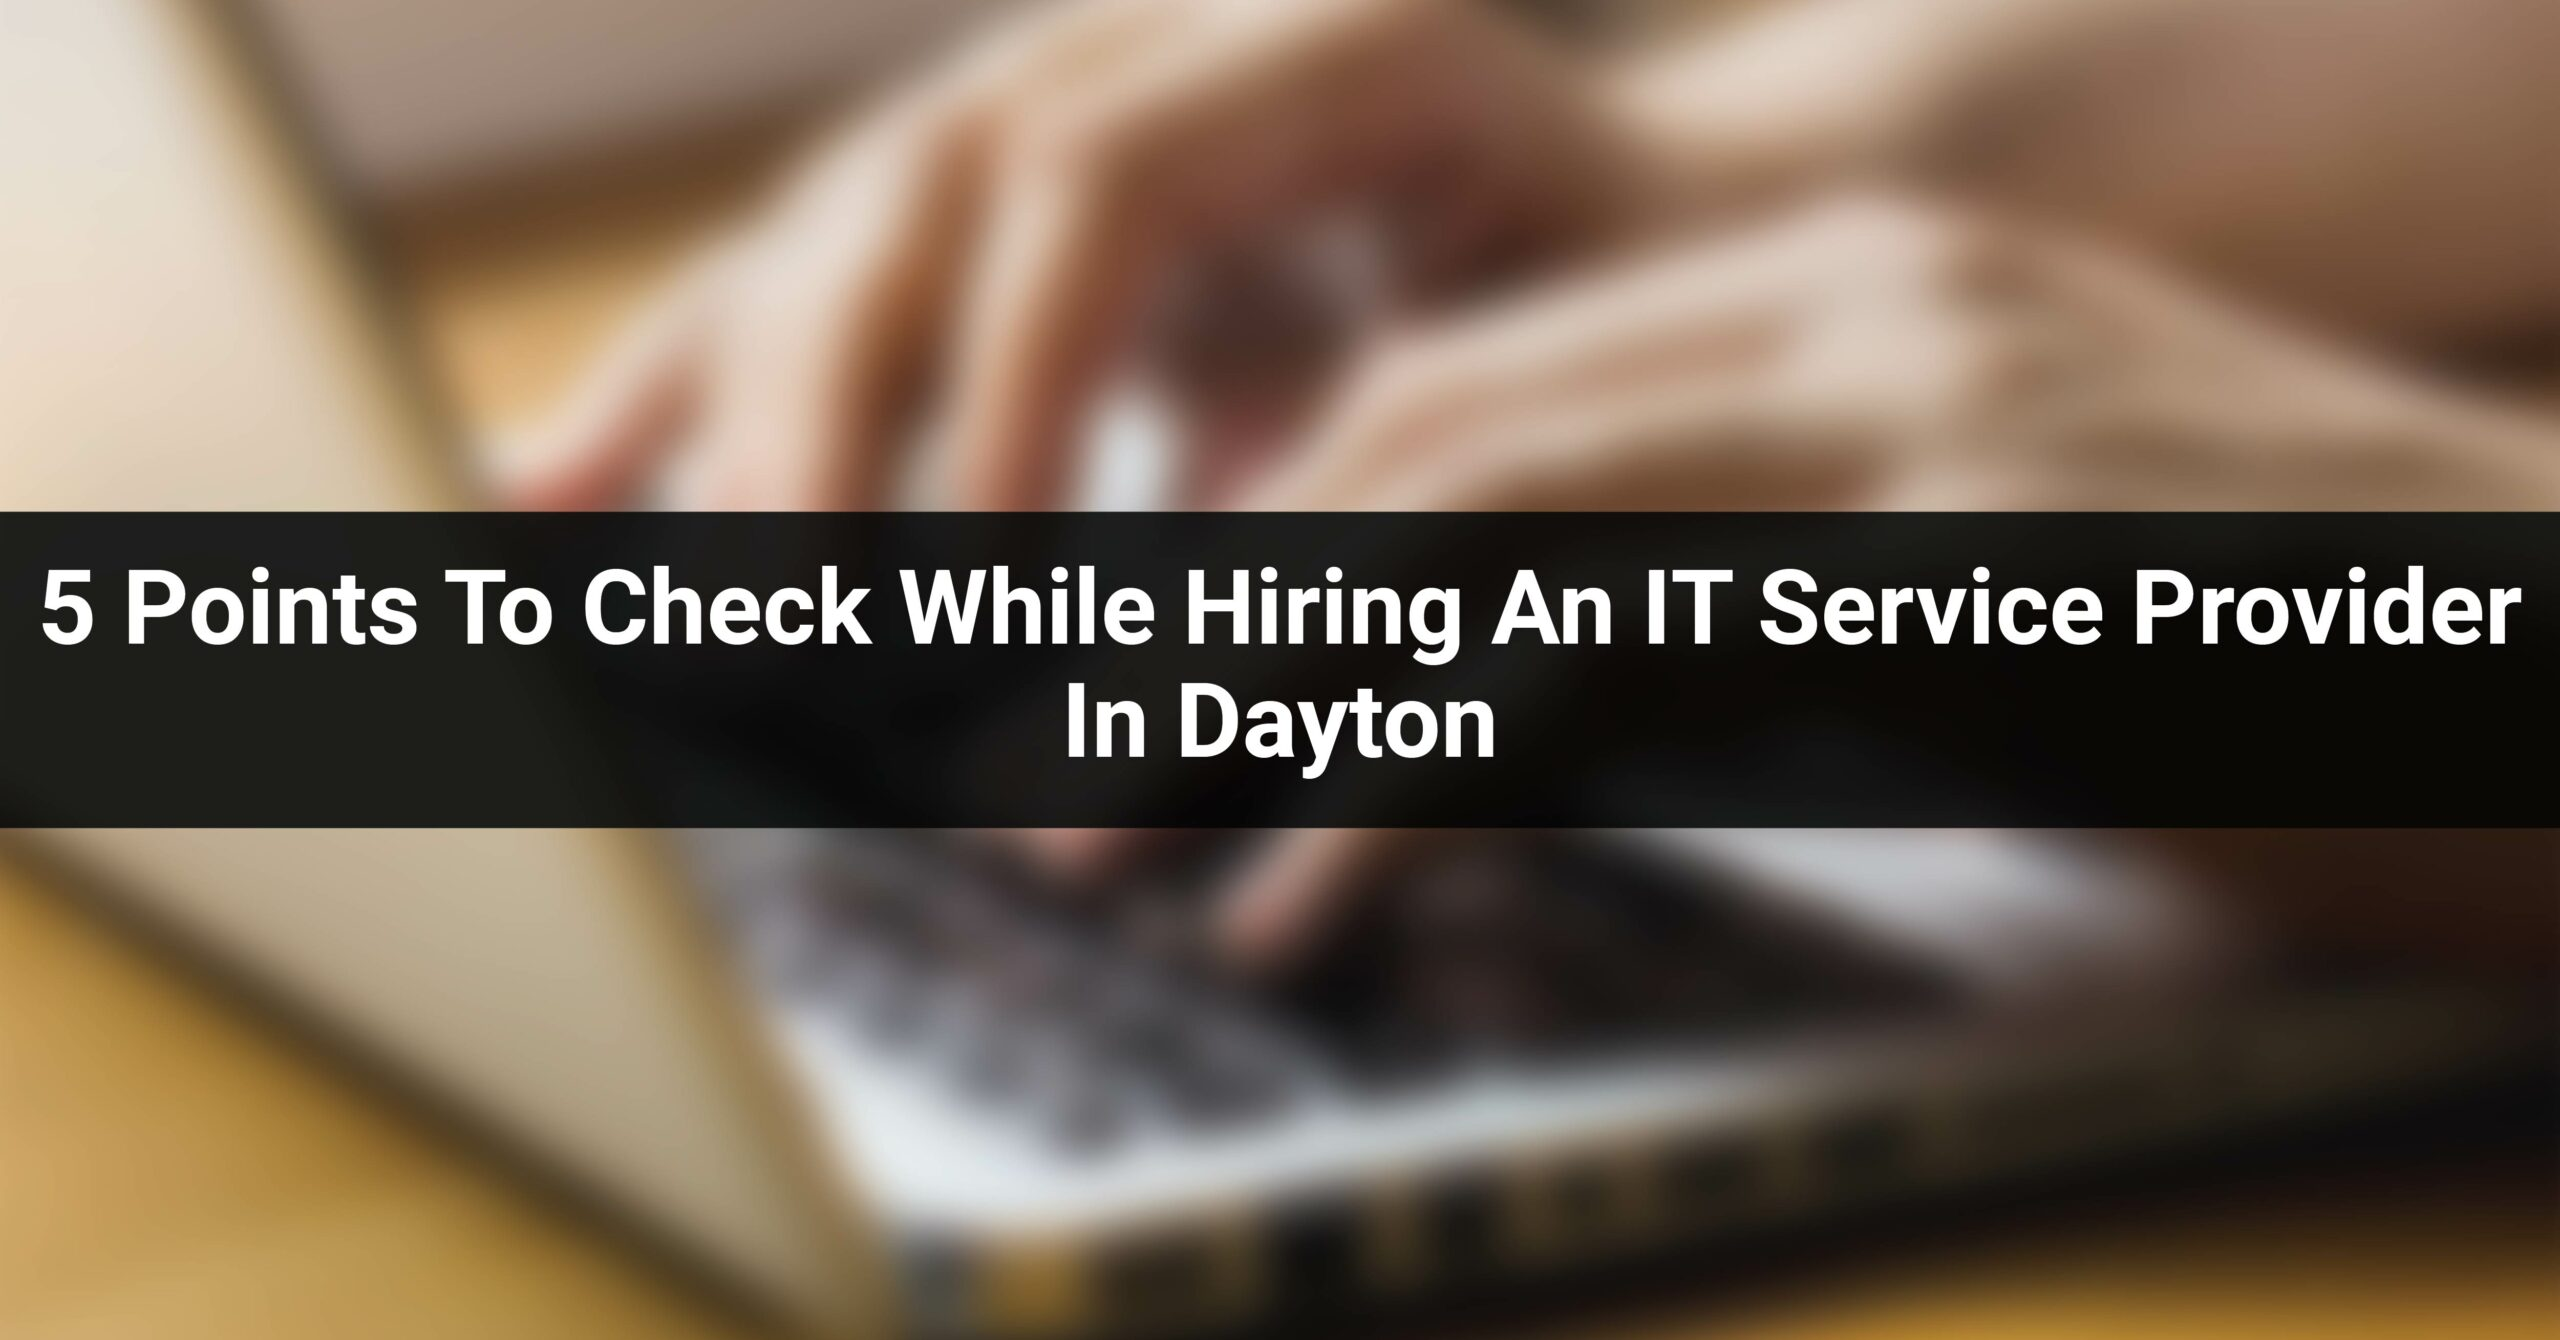 5 Points To Check While Hiring An IT Service Provider In Dayton